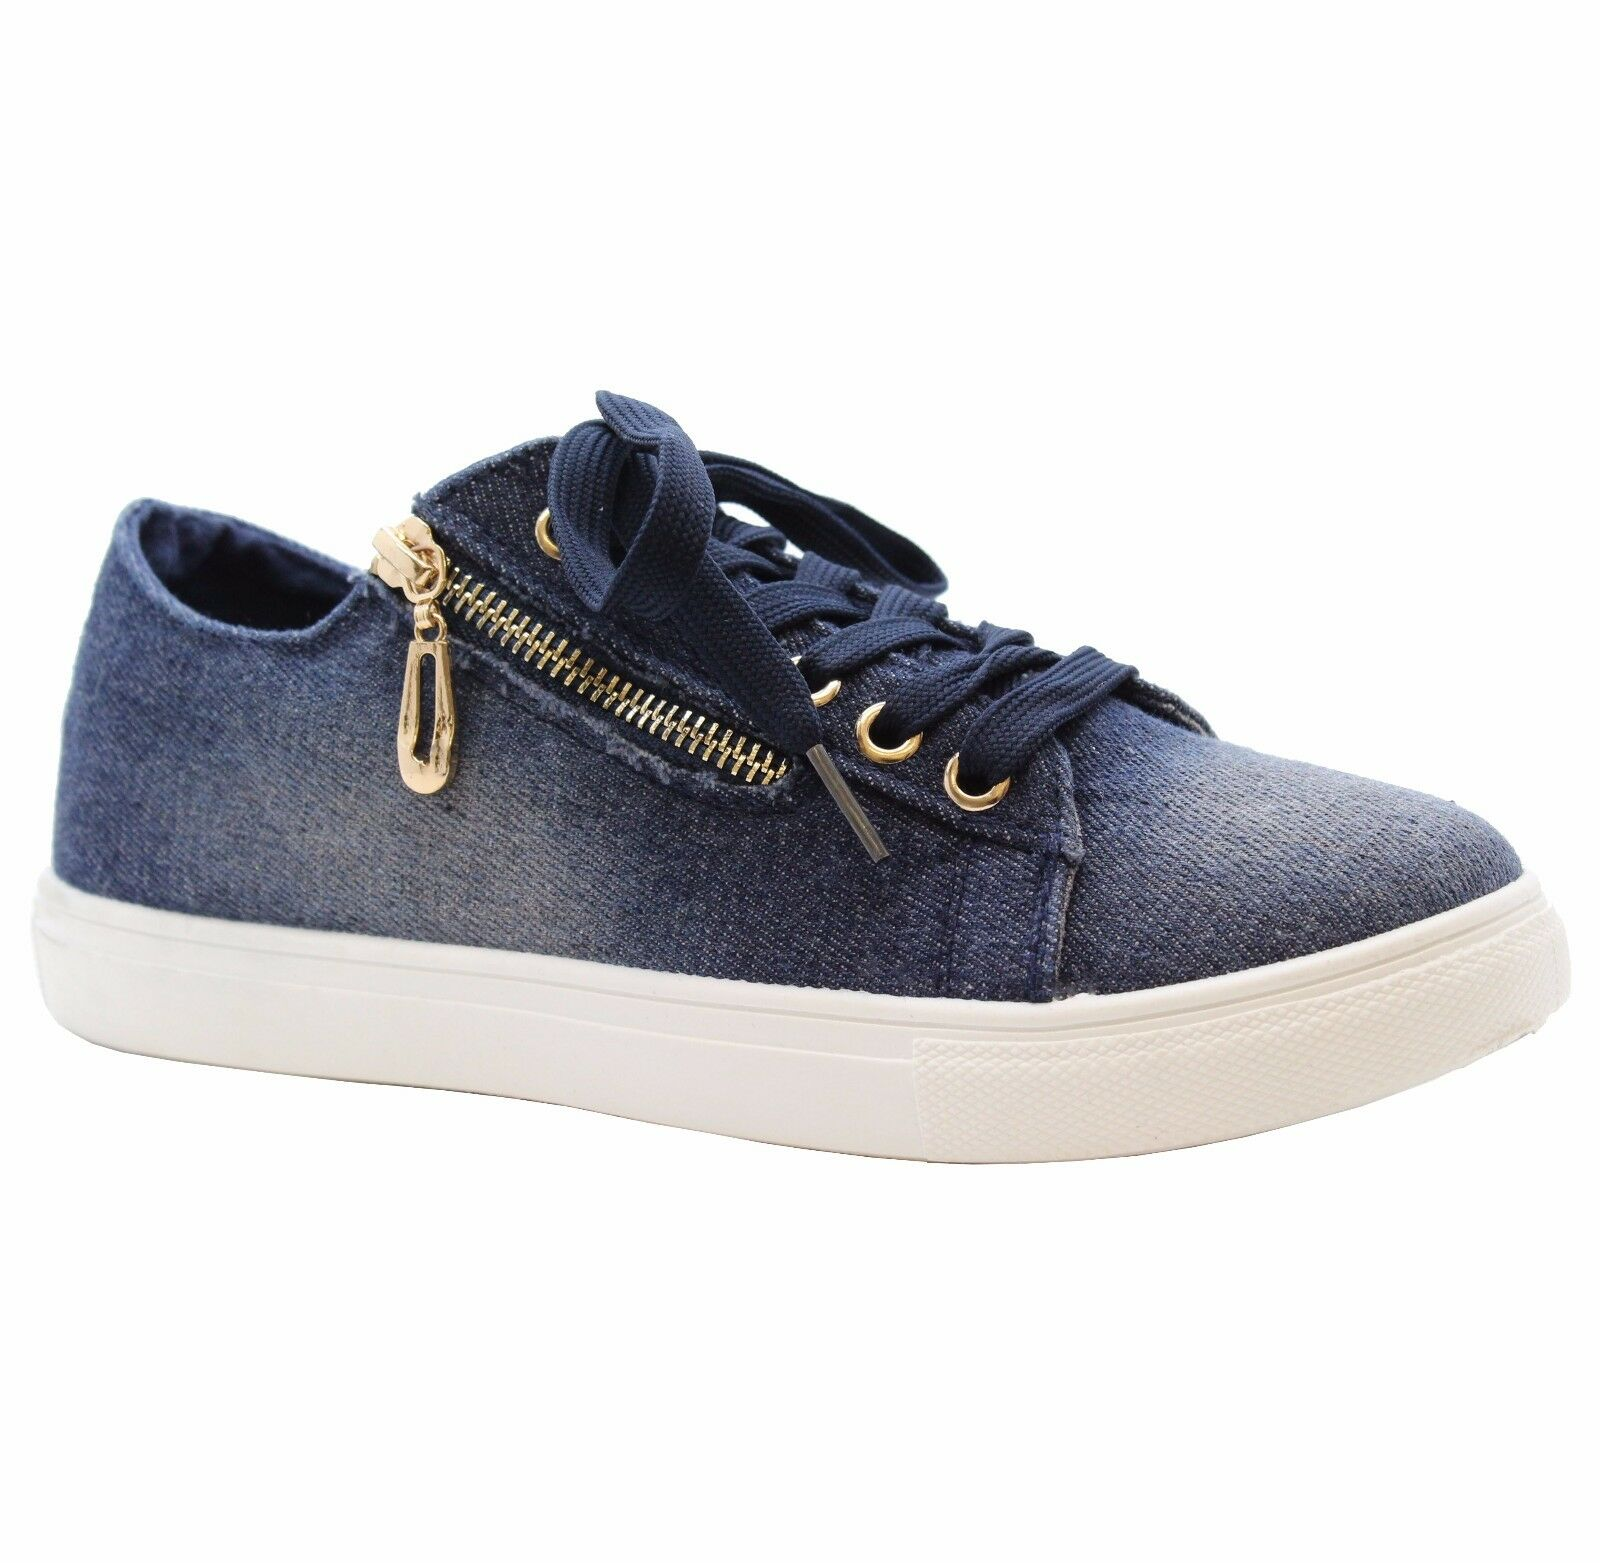 Ladies Womens Flats Lace Up Canvas Funky Denim Sneaker Pumps Trainers Shoes Size